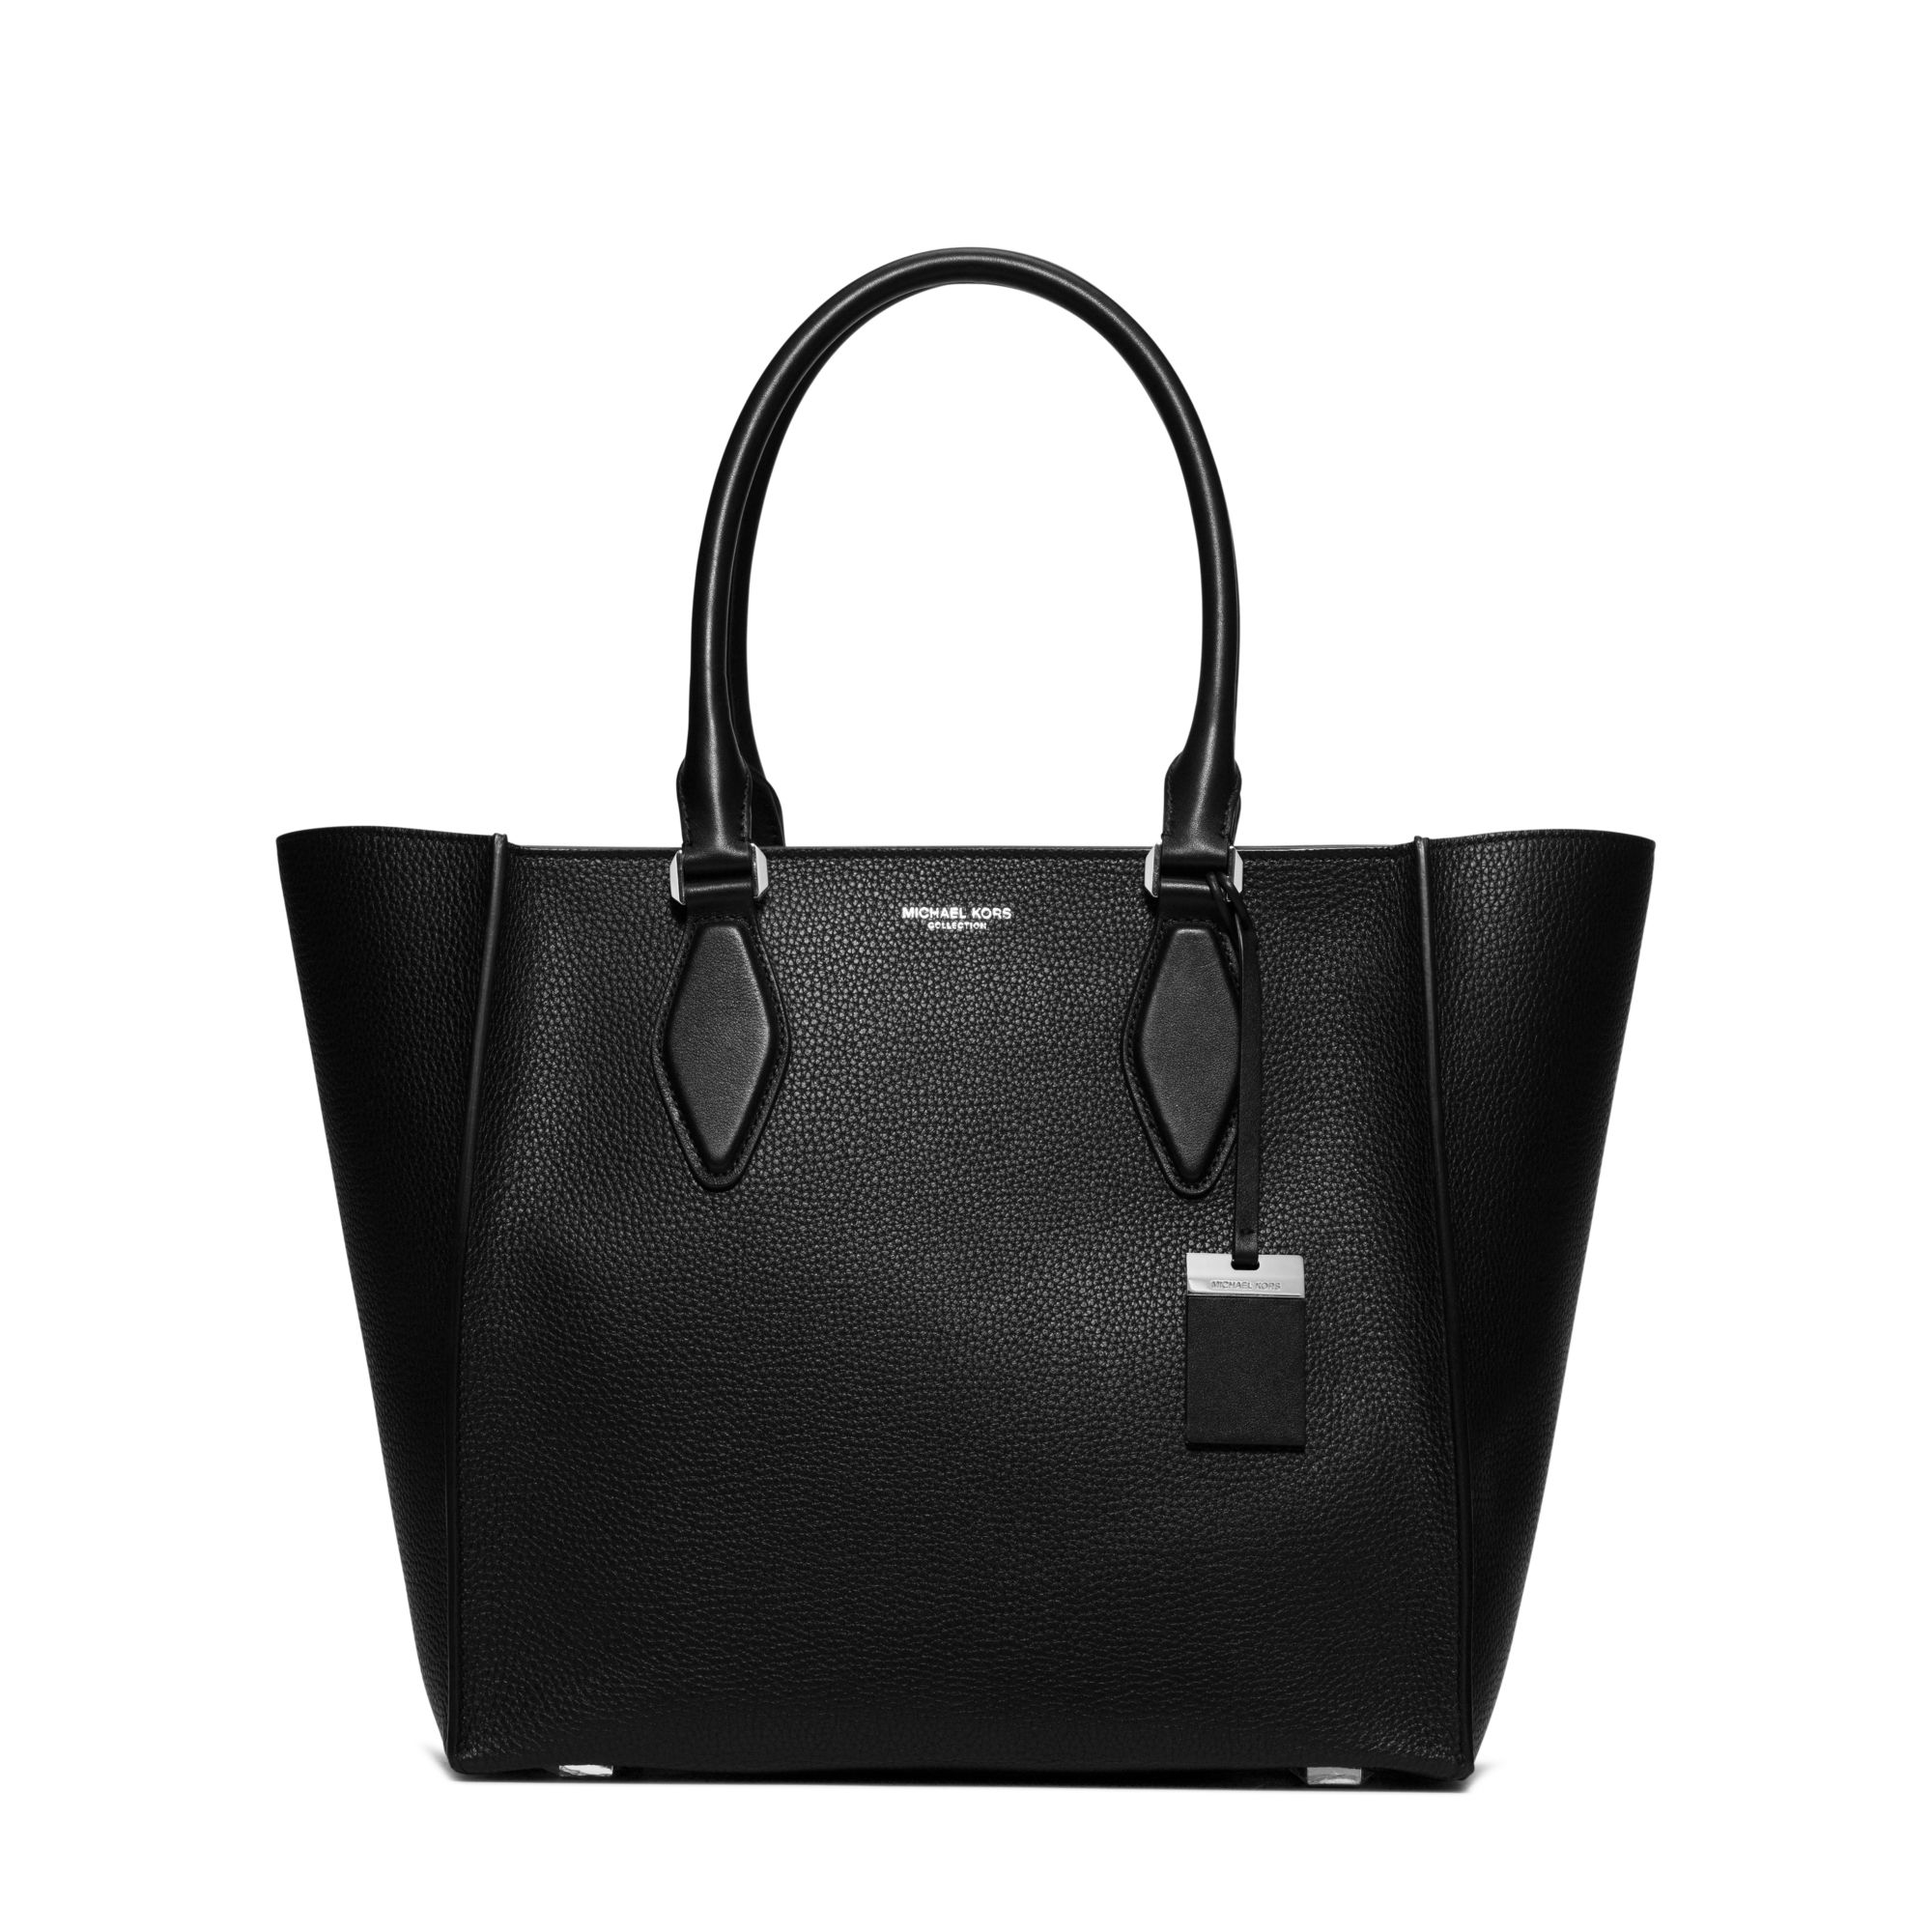 michael kors gracie large leather tote in black lyst. Black Bedroom Furniture Sets. Home Design Ideas